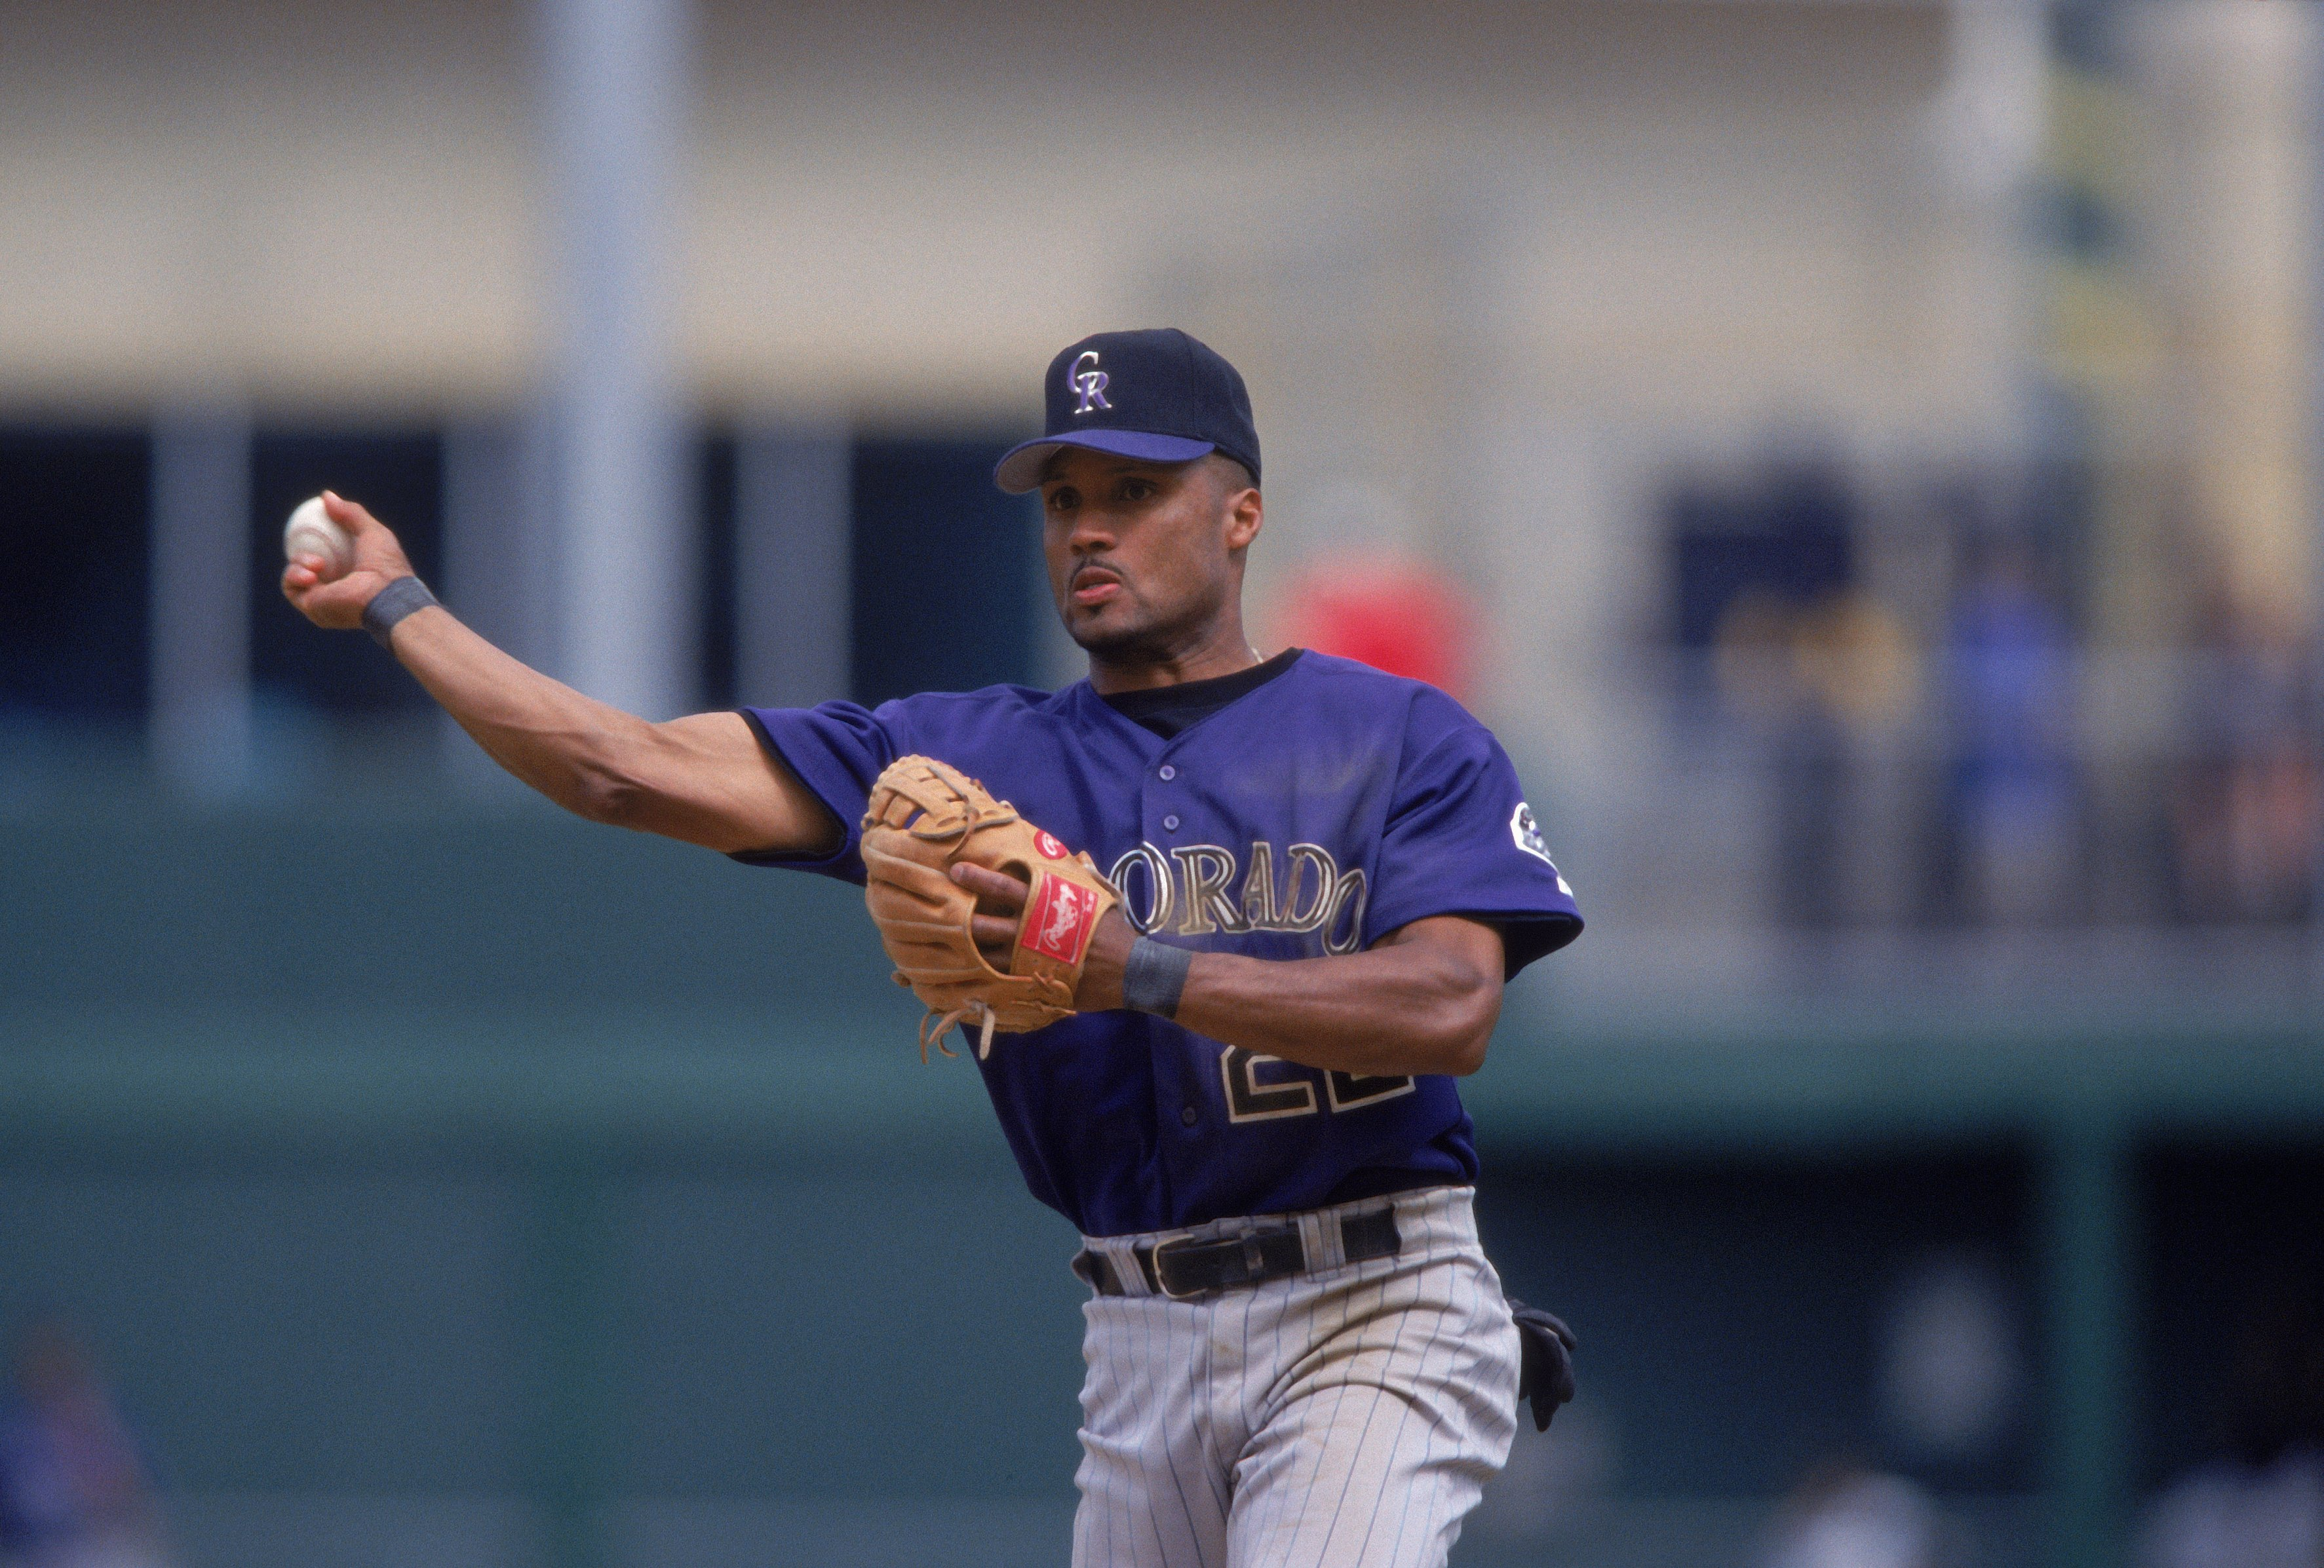 May 6 , 2001: Terry Shumpert #22 of the Colorado Rockies throws the ball during the game against the Pittsuburgh Pirates at PNC Park in Pittsburgh, Pennsylvania. The Pirates defeated the Rockies 4-3.(credit: Tom Pigeon/Allsport/Getty Images)